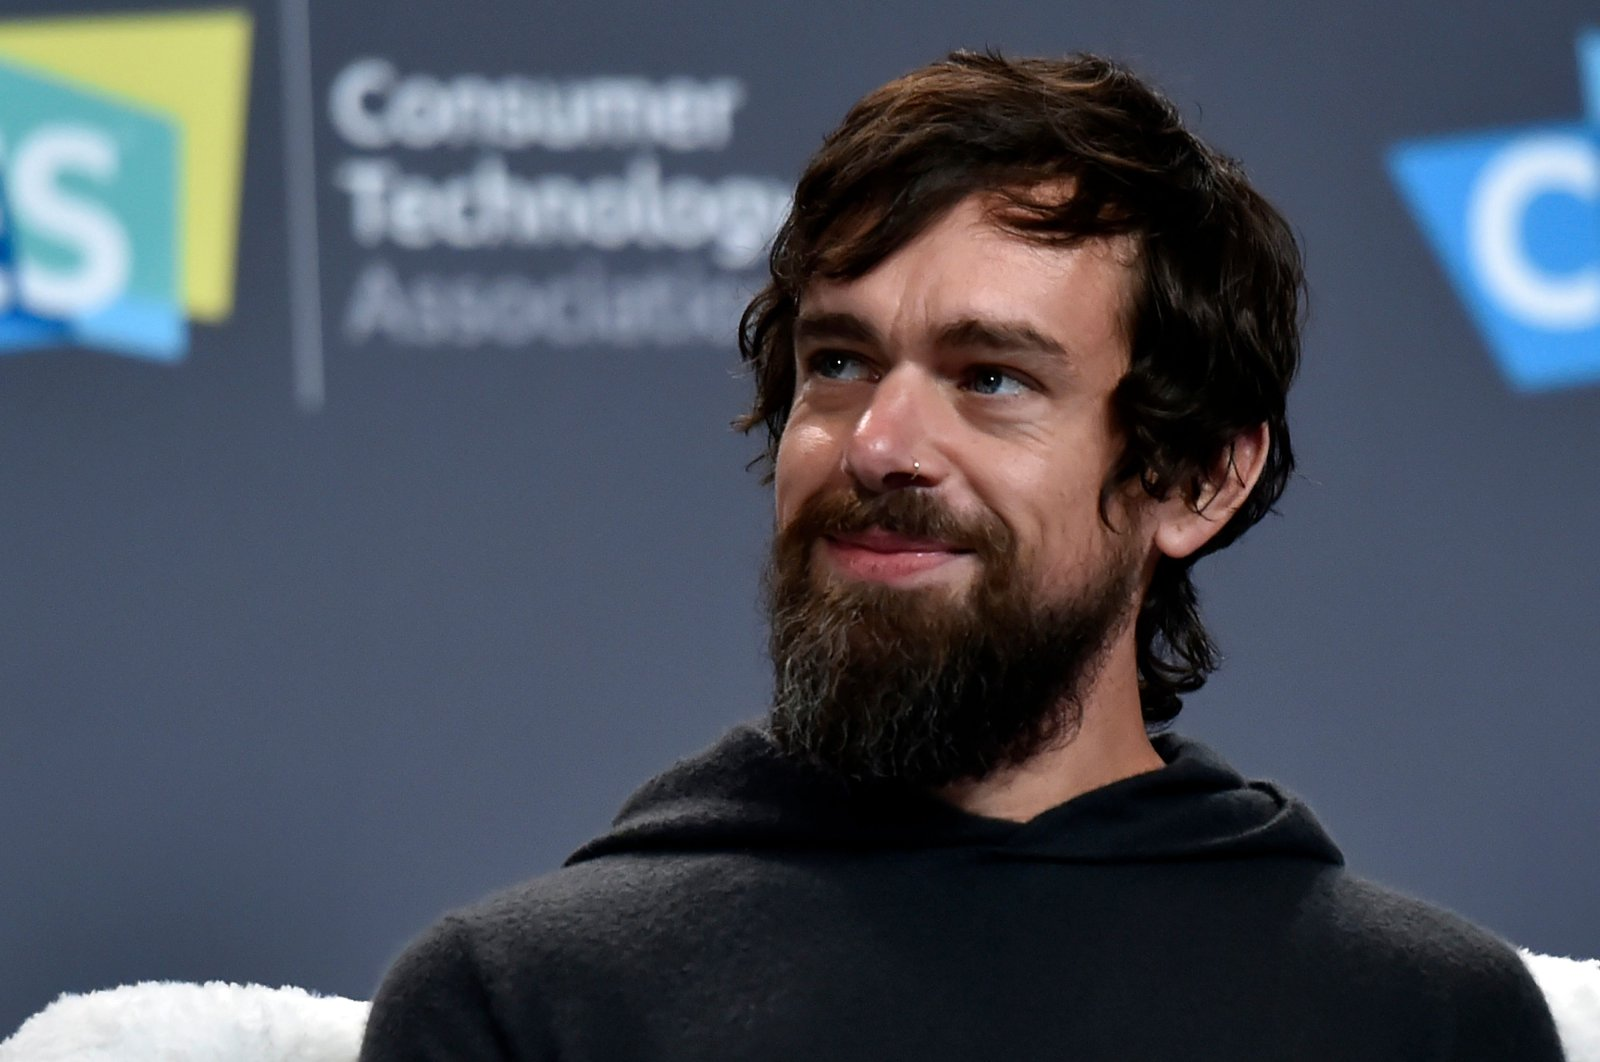 Twitter CEO Jack Dorsey speaks during a press event at CES 2019, in Las Vegas, Nevada, Jan. 9, 2019. (AFP Photo)